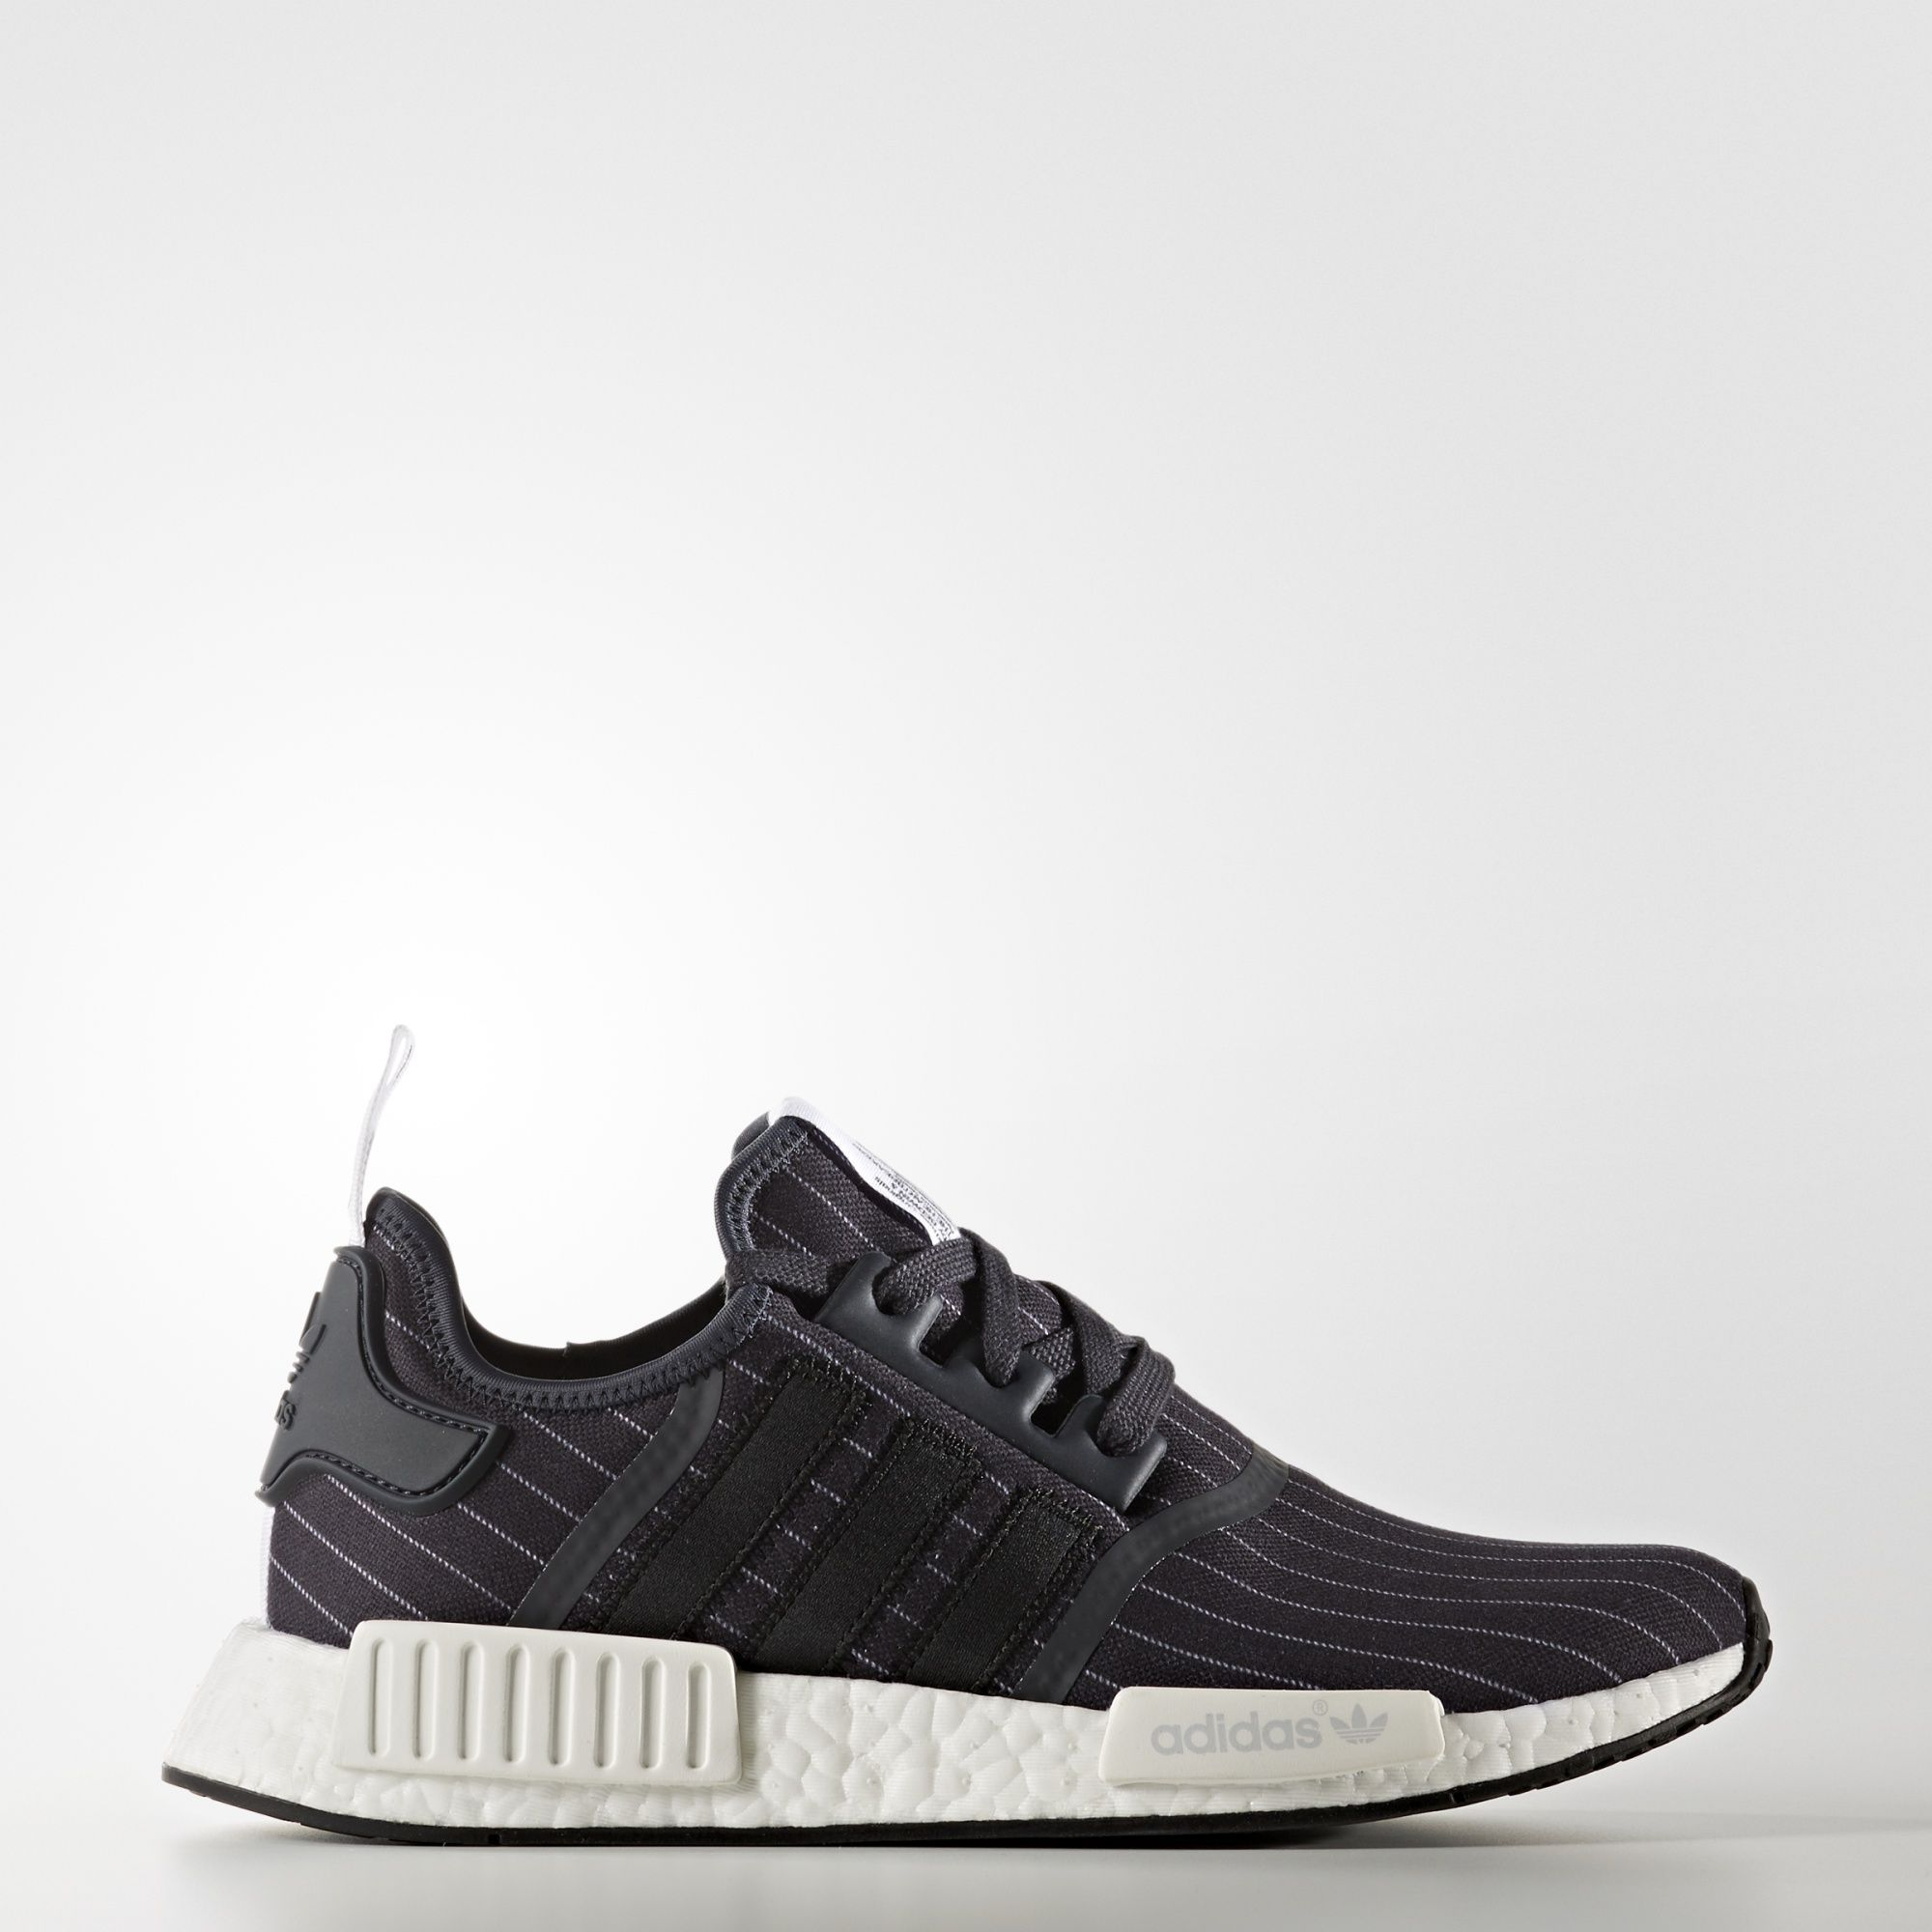 Nmd_r1 Chaussures Bedwin lygky1bJUl